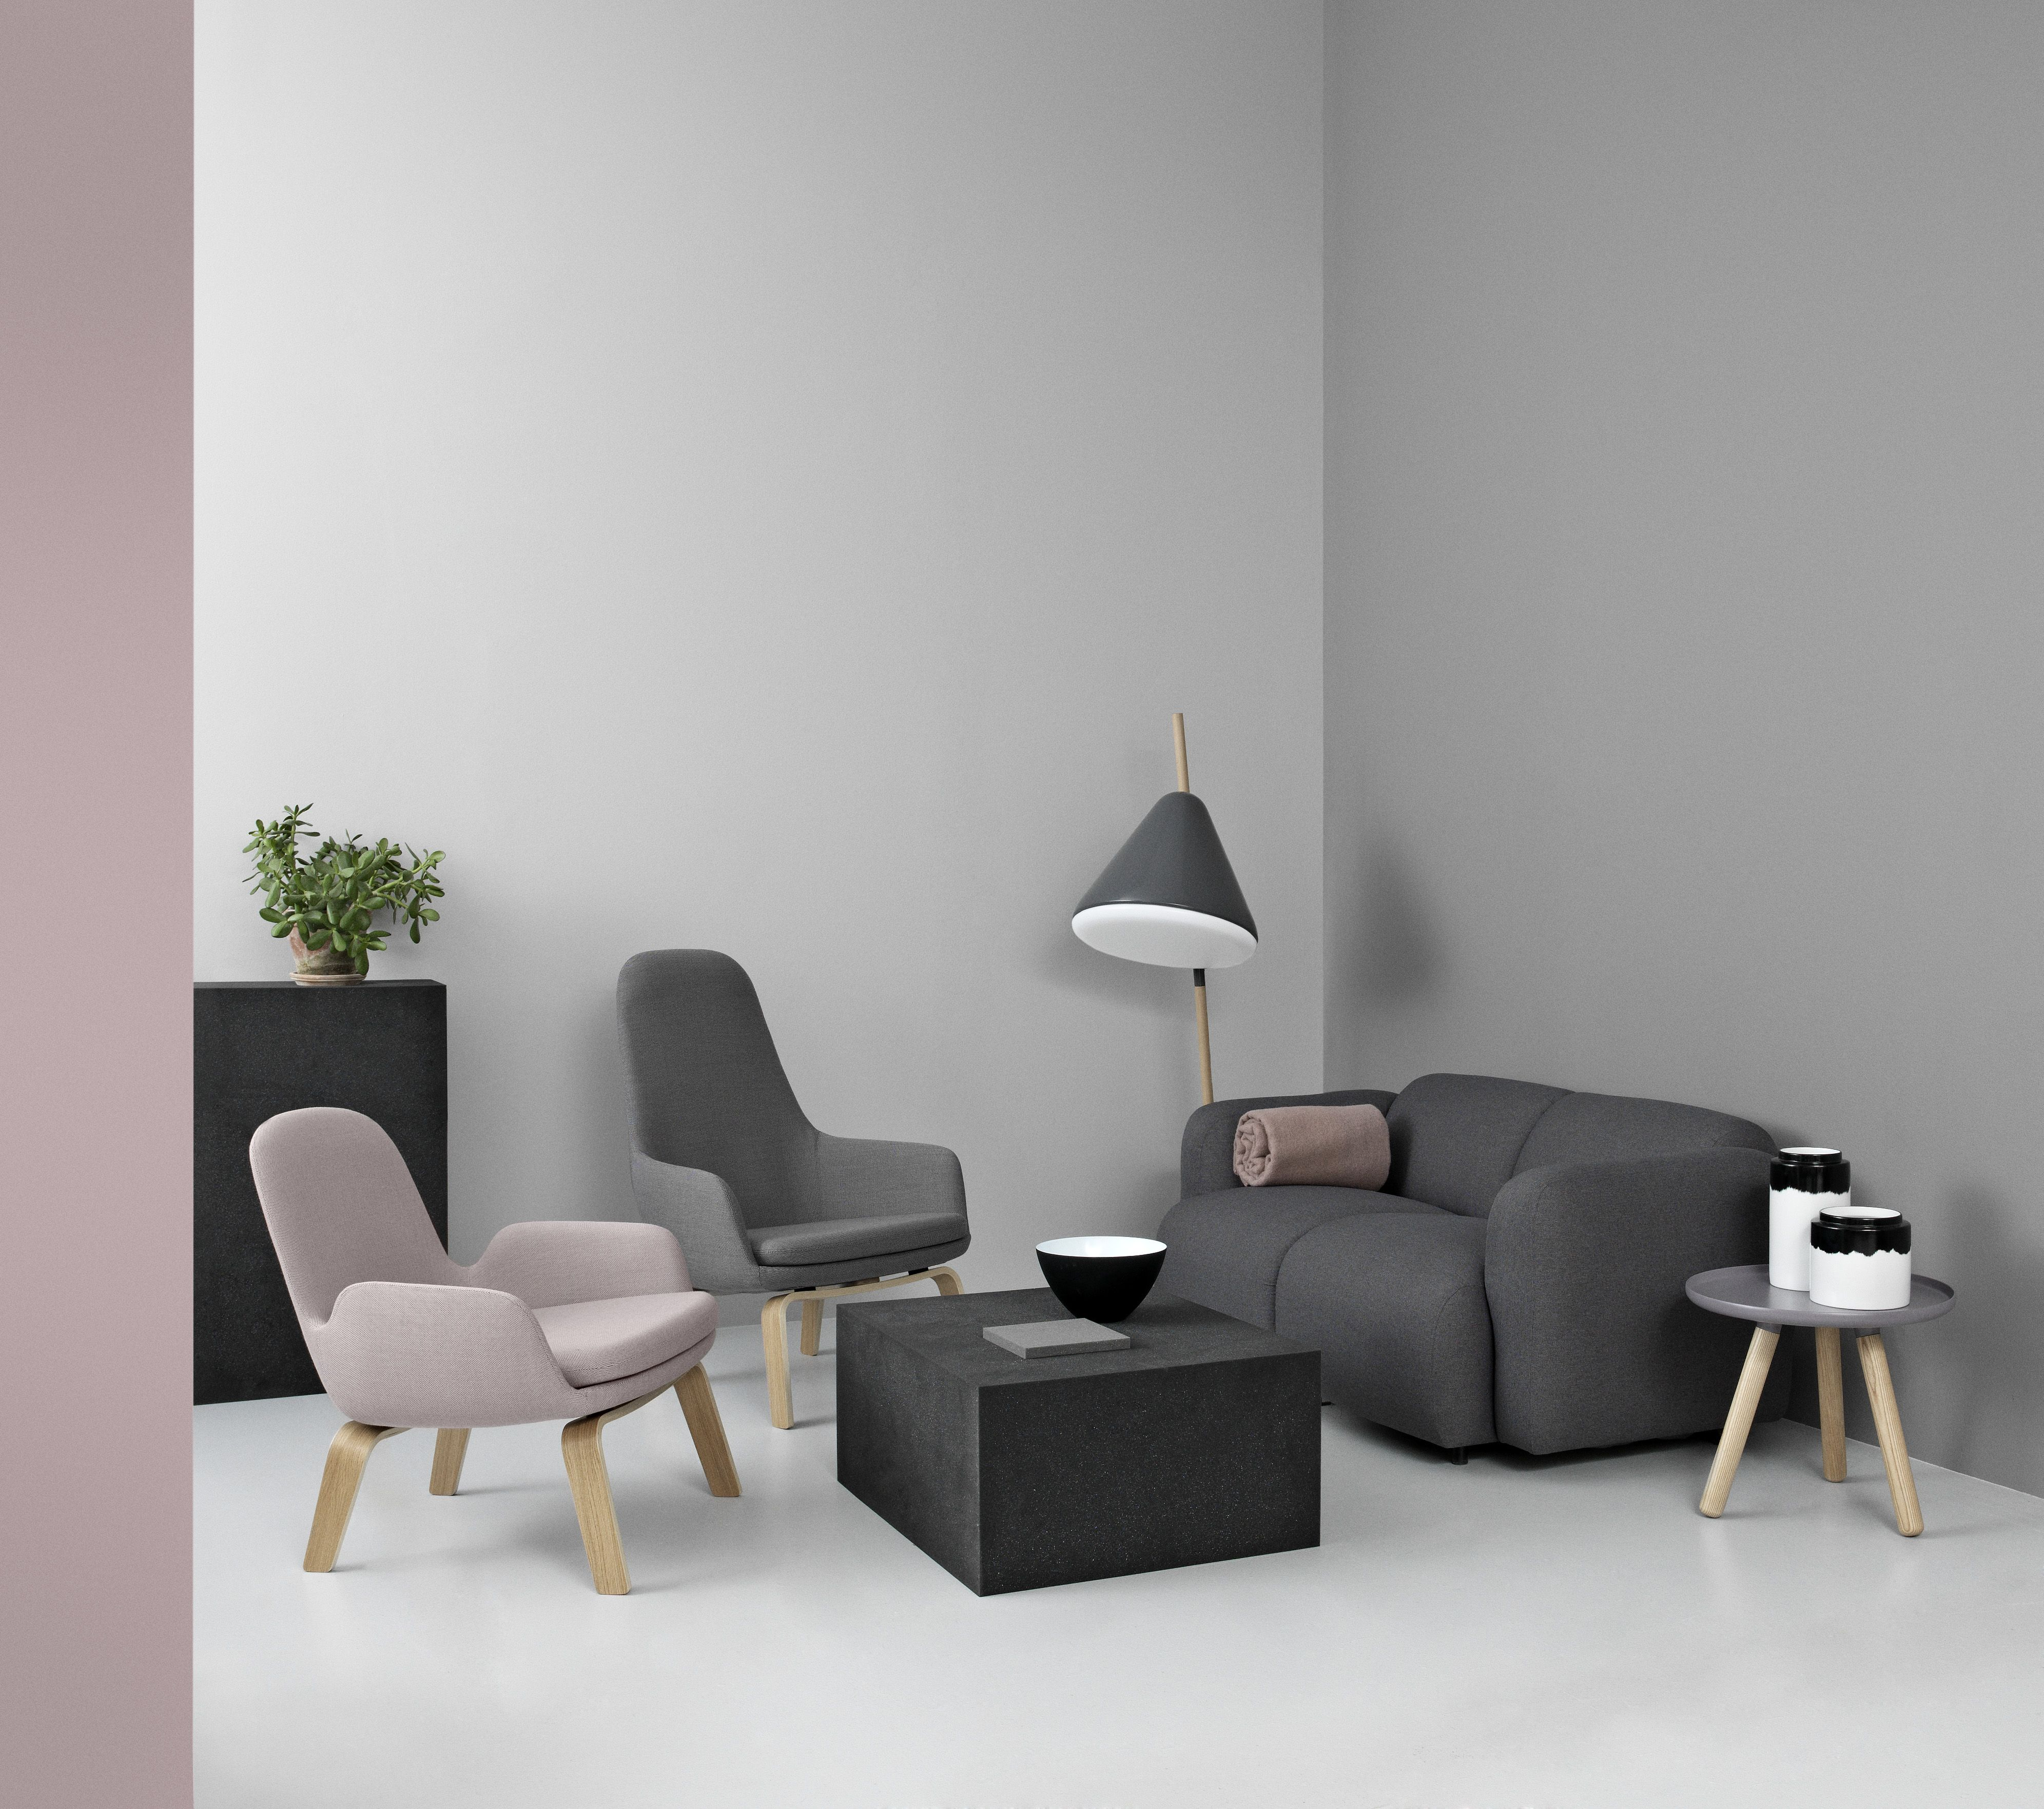 Swell sofa ac panied by Era lounge chairs in dusted tones